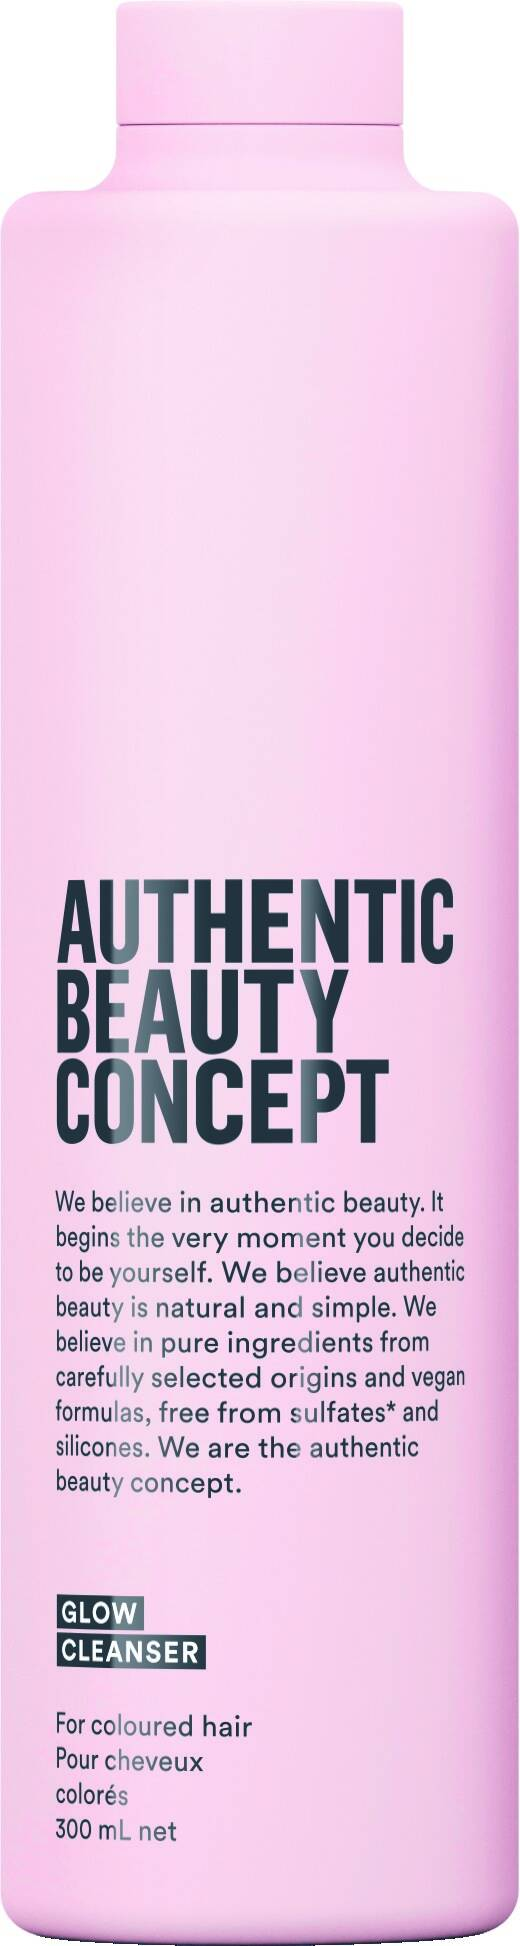 Authentic Beauty Concept Glow Cleanser  (shampoo) 300ml